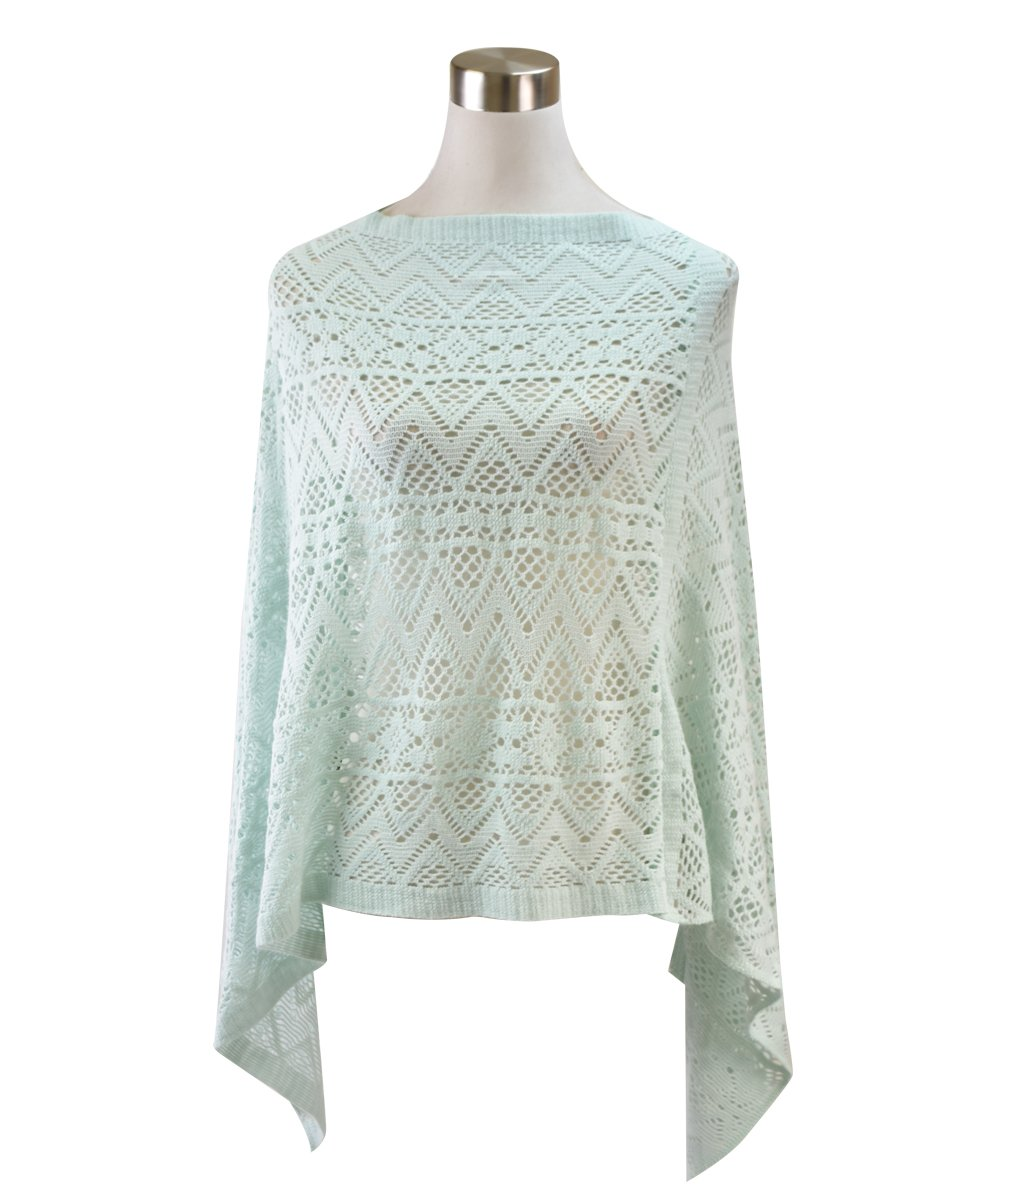 Le Nom Light Weight Knit Comfy Poncho (MINT)